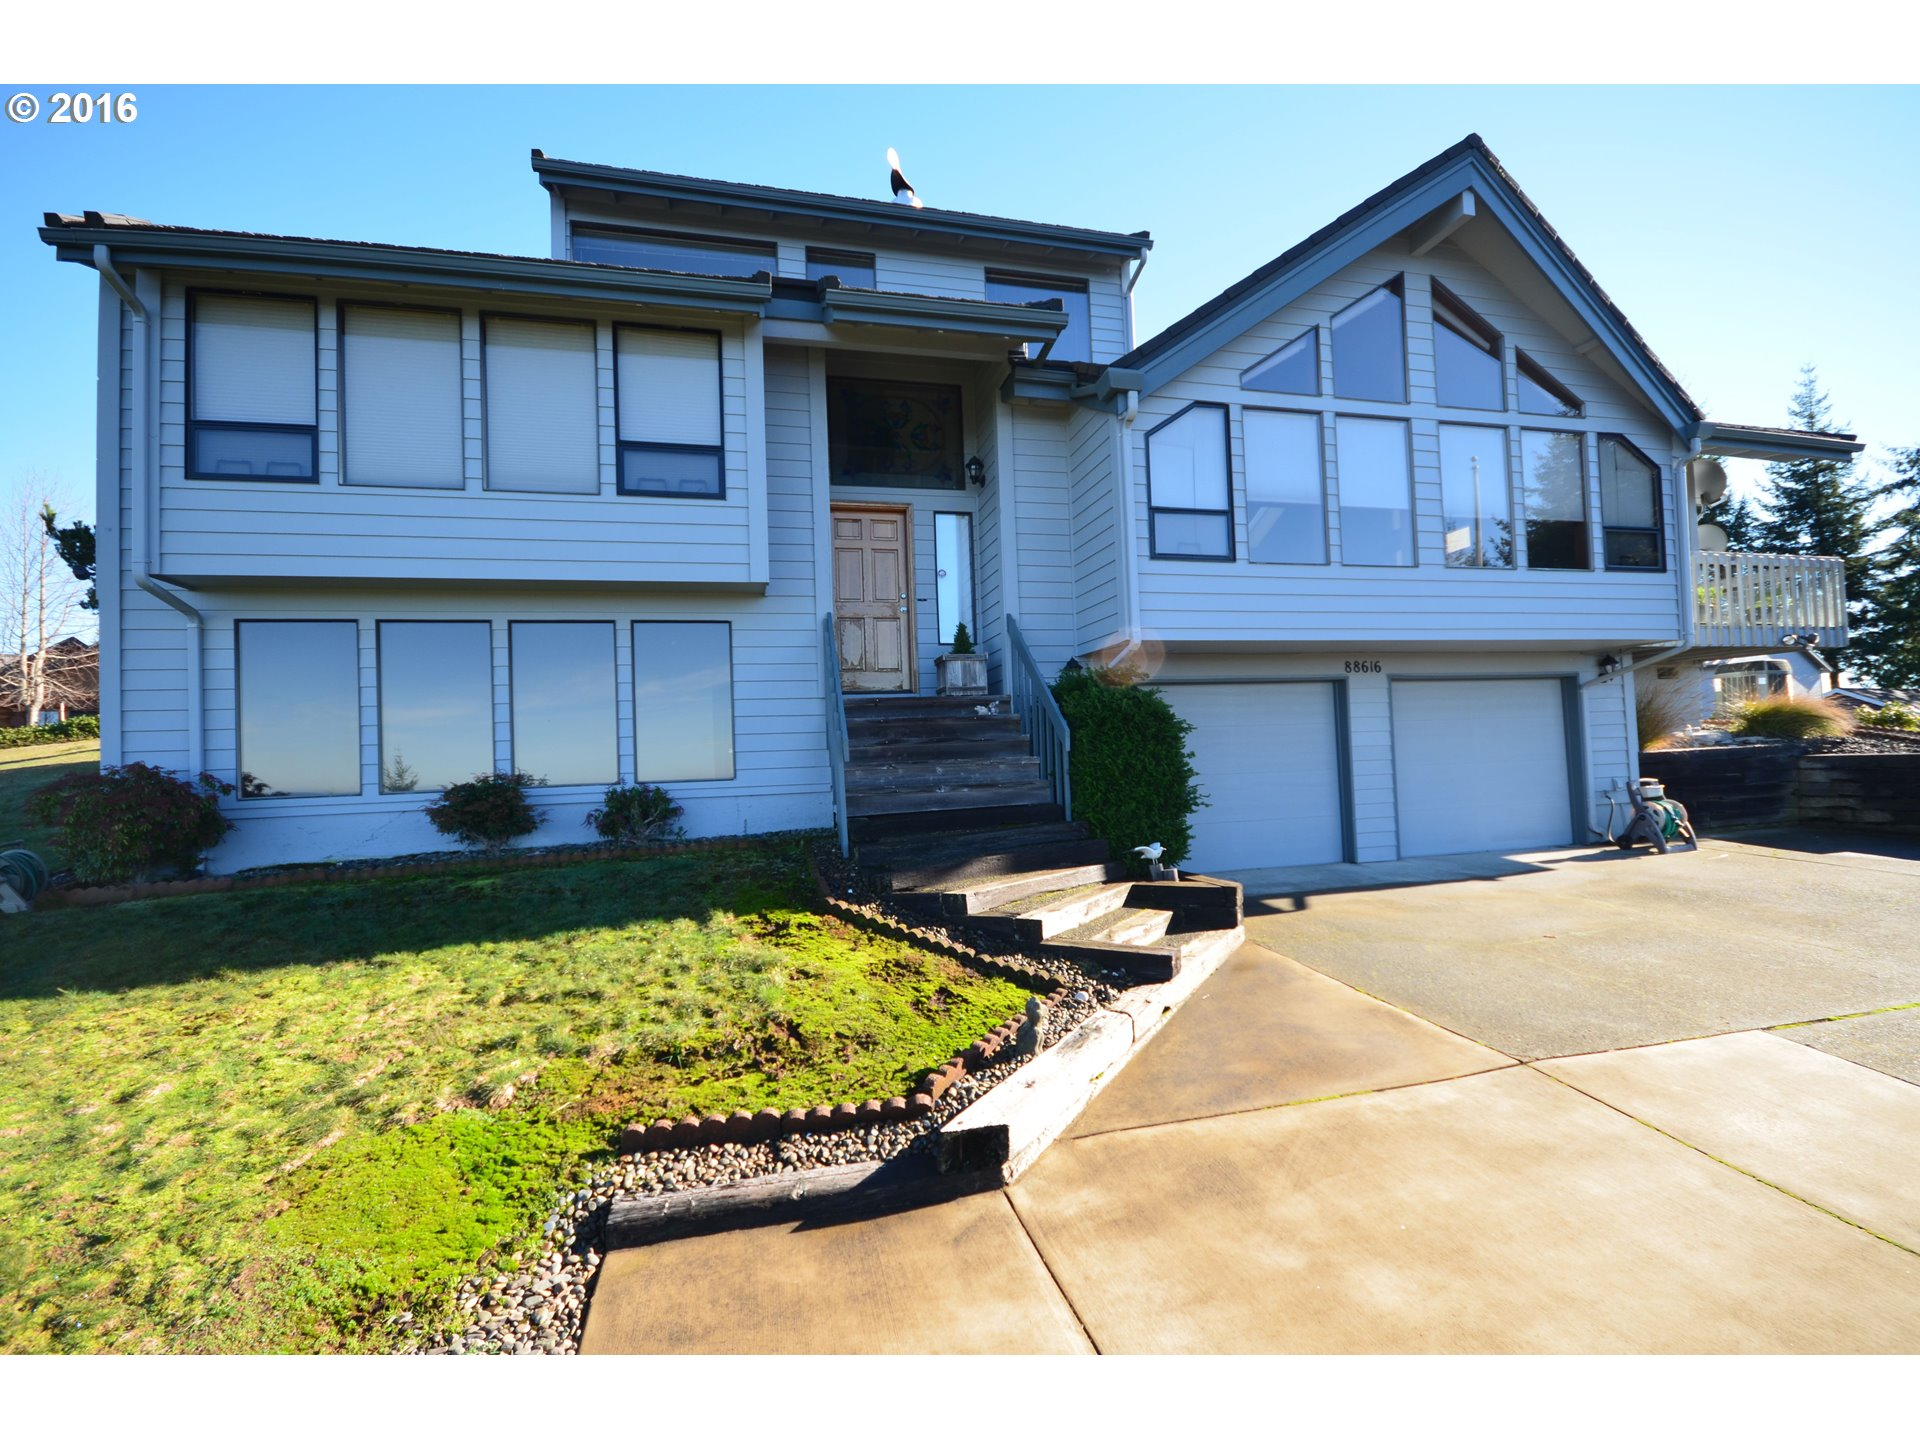 88616 OCEAN VIEW LN, Florence, OR 97439